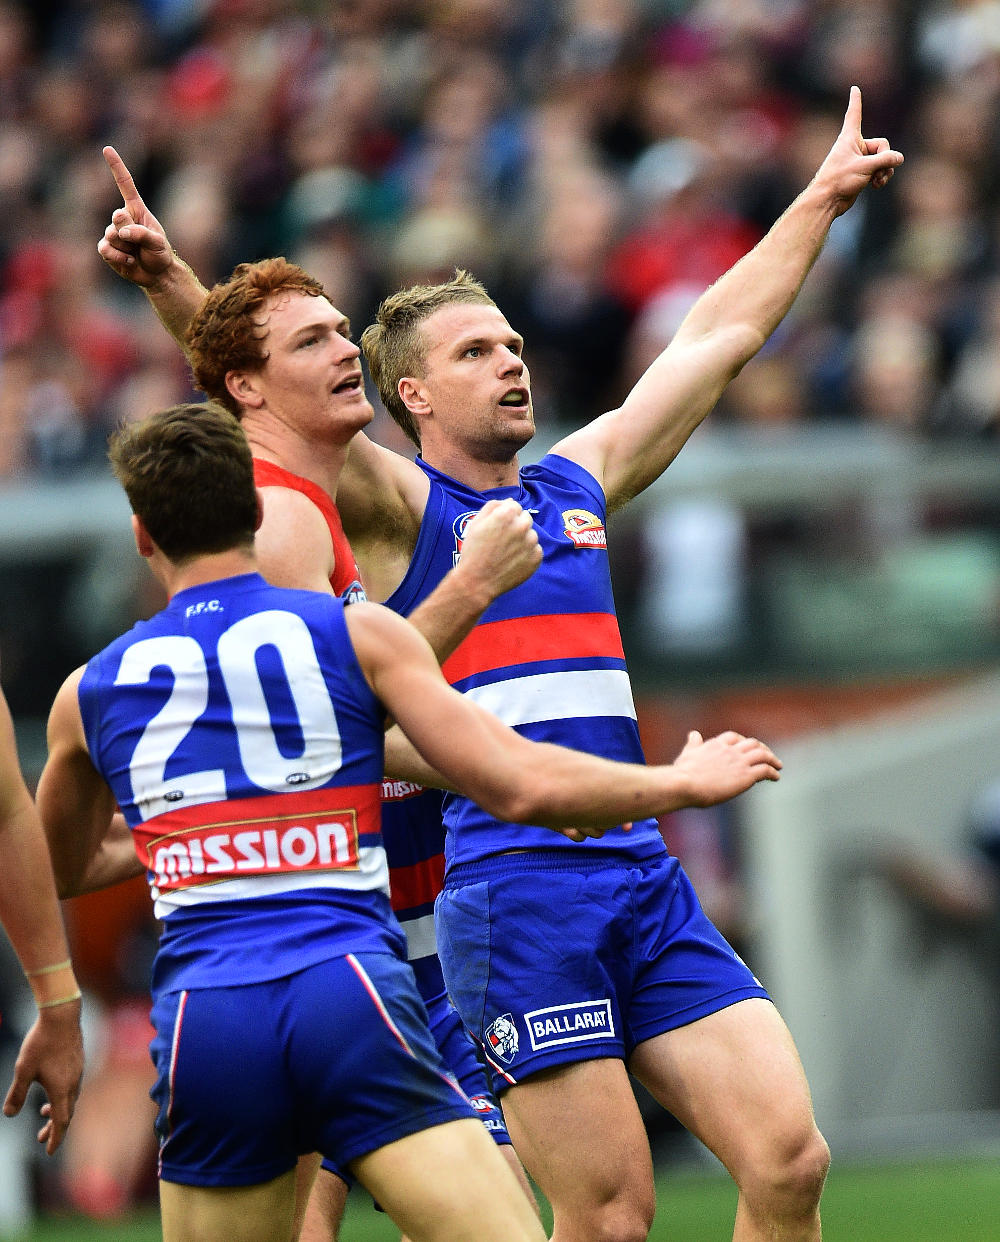 jake-stringer-western-bulldogs-afl-grand-final-2016-tall